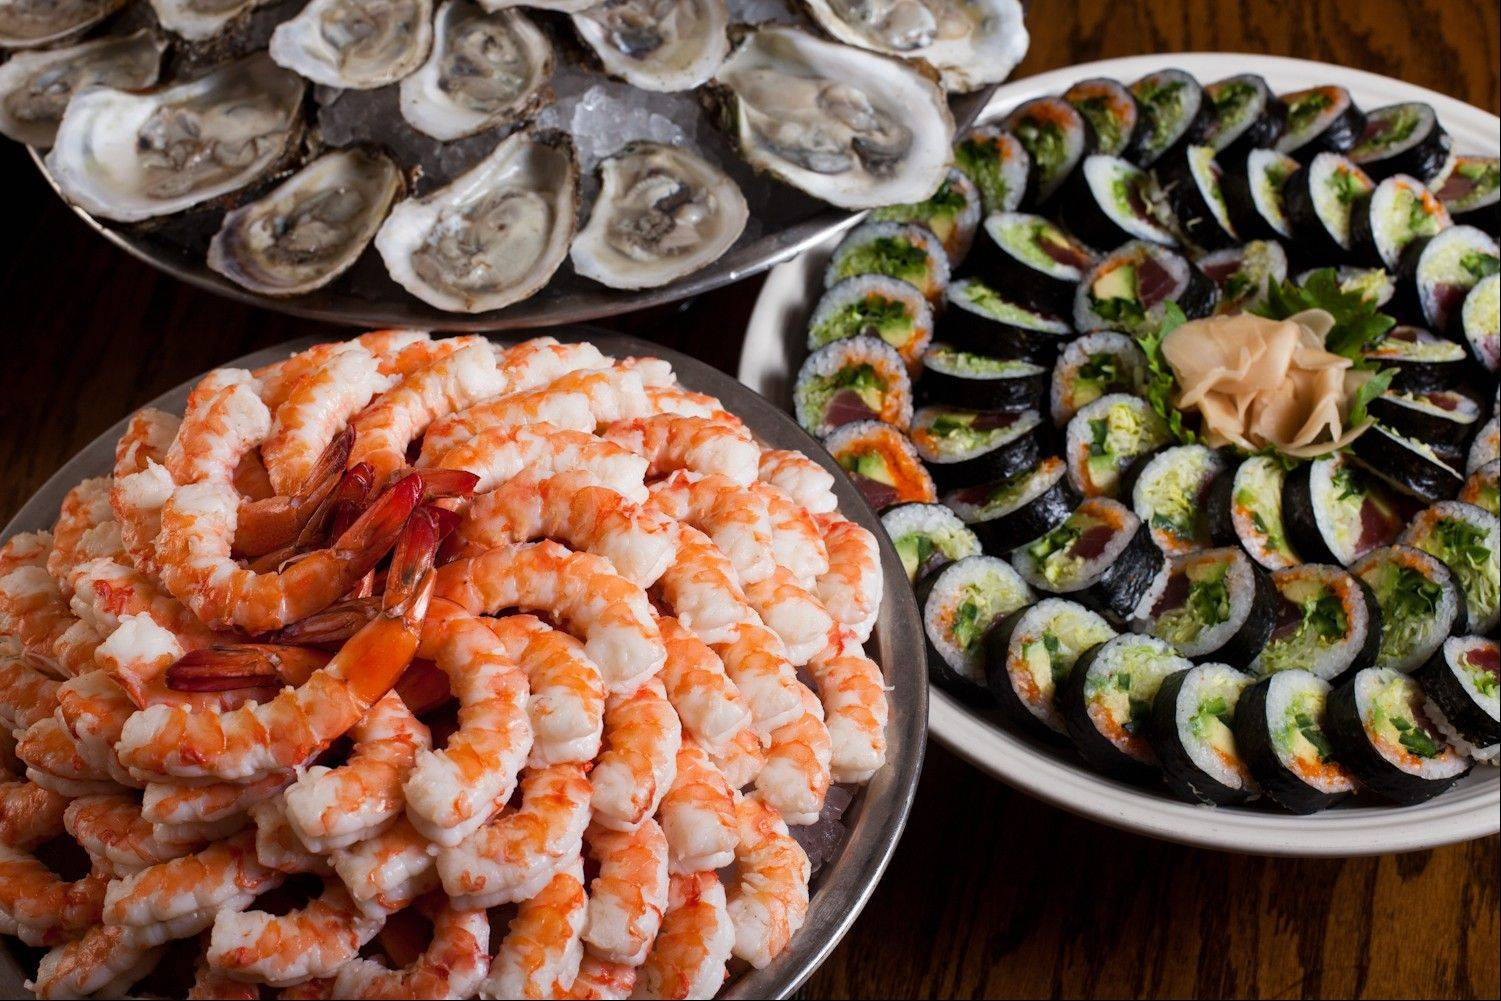 A Christmas Eve buffet at Shaw's includes both cold and hot seafood and a carving station.